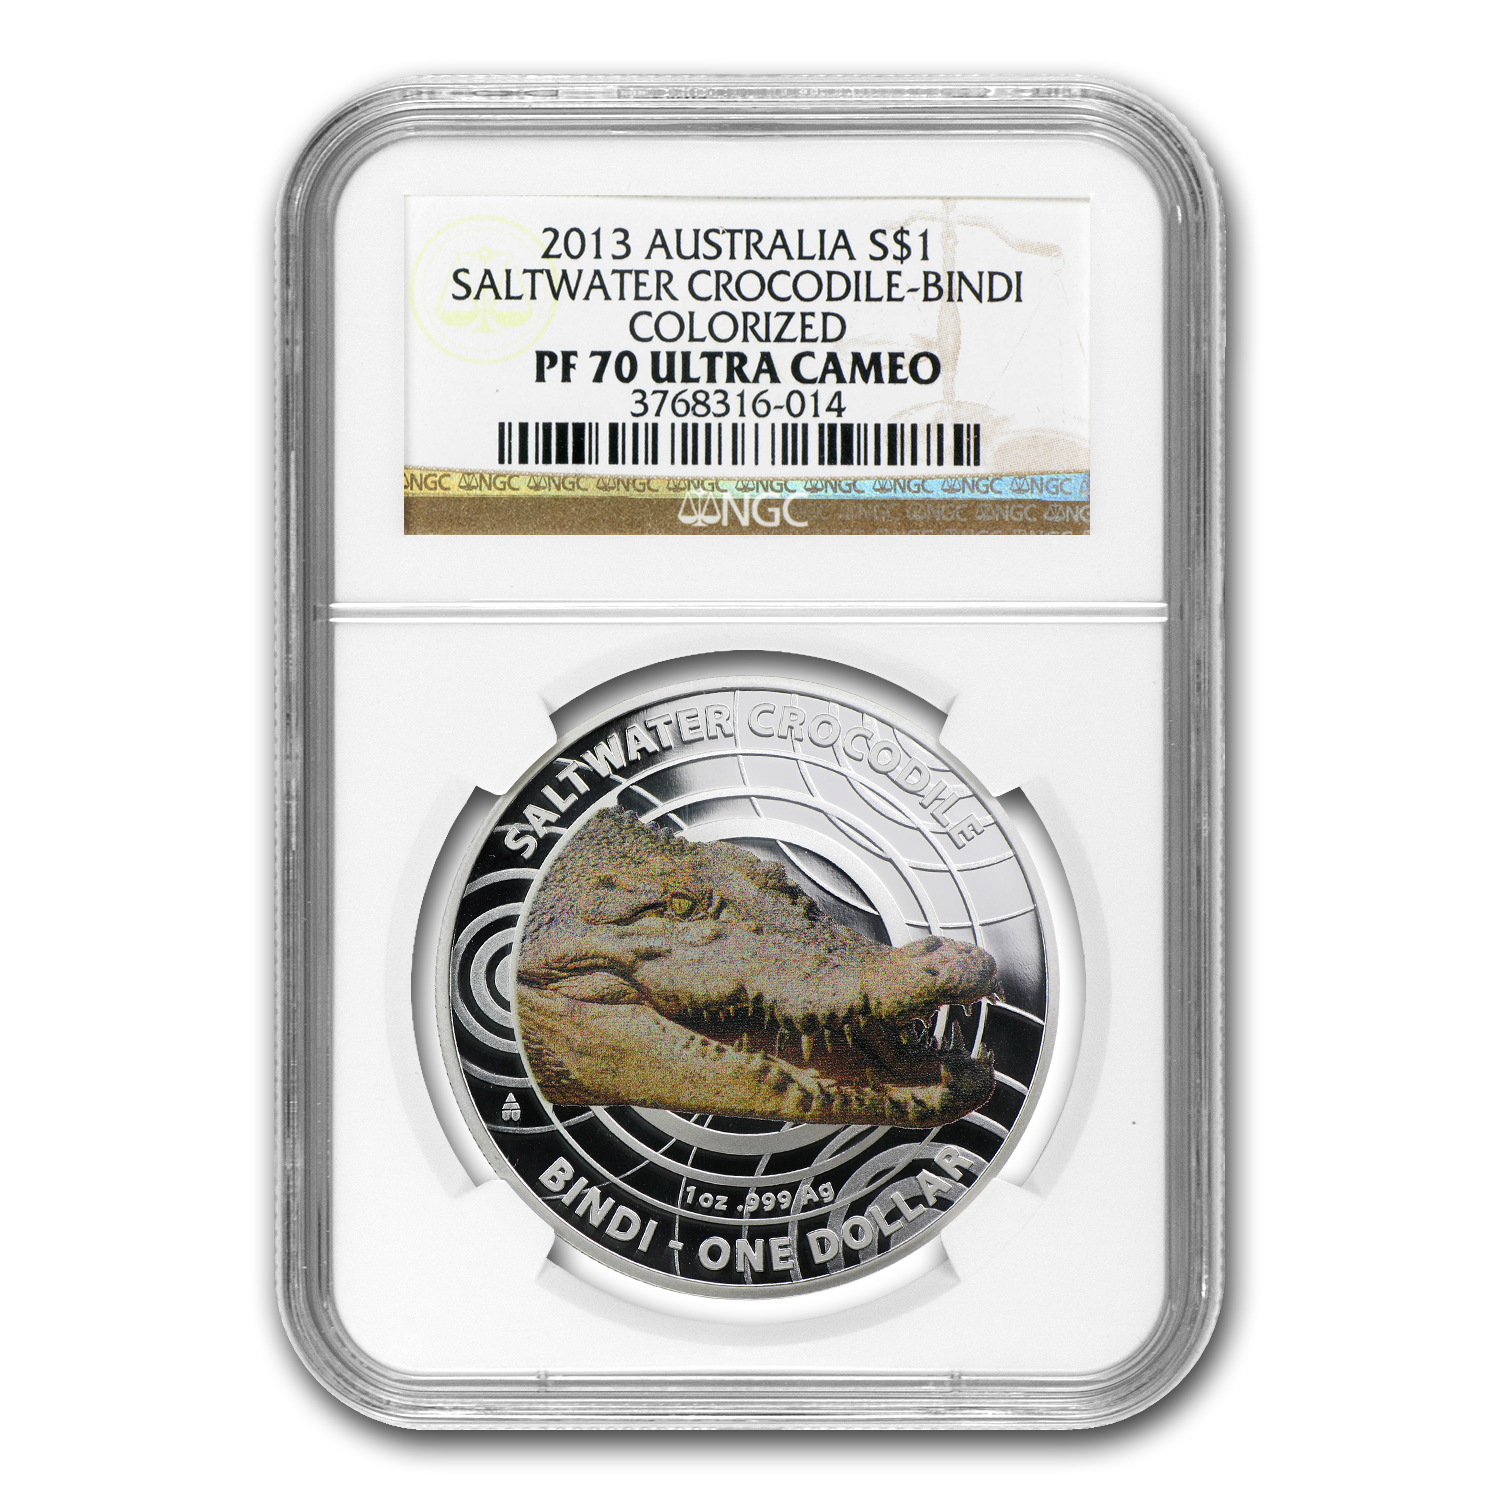 2013 Australia Silver Crocodile Bindi PF-70 NGC (Colorized)